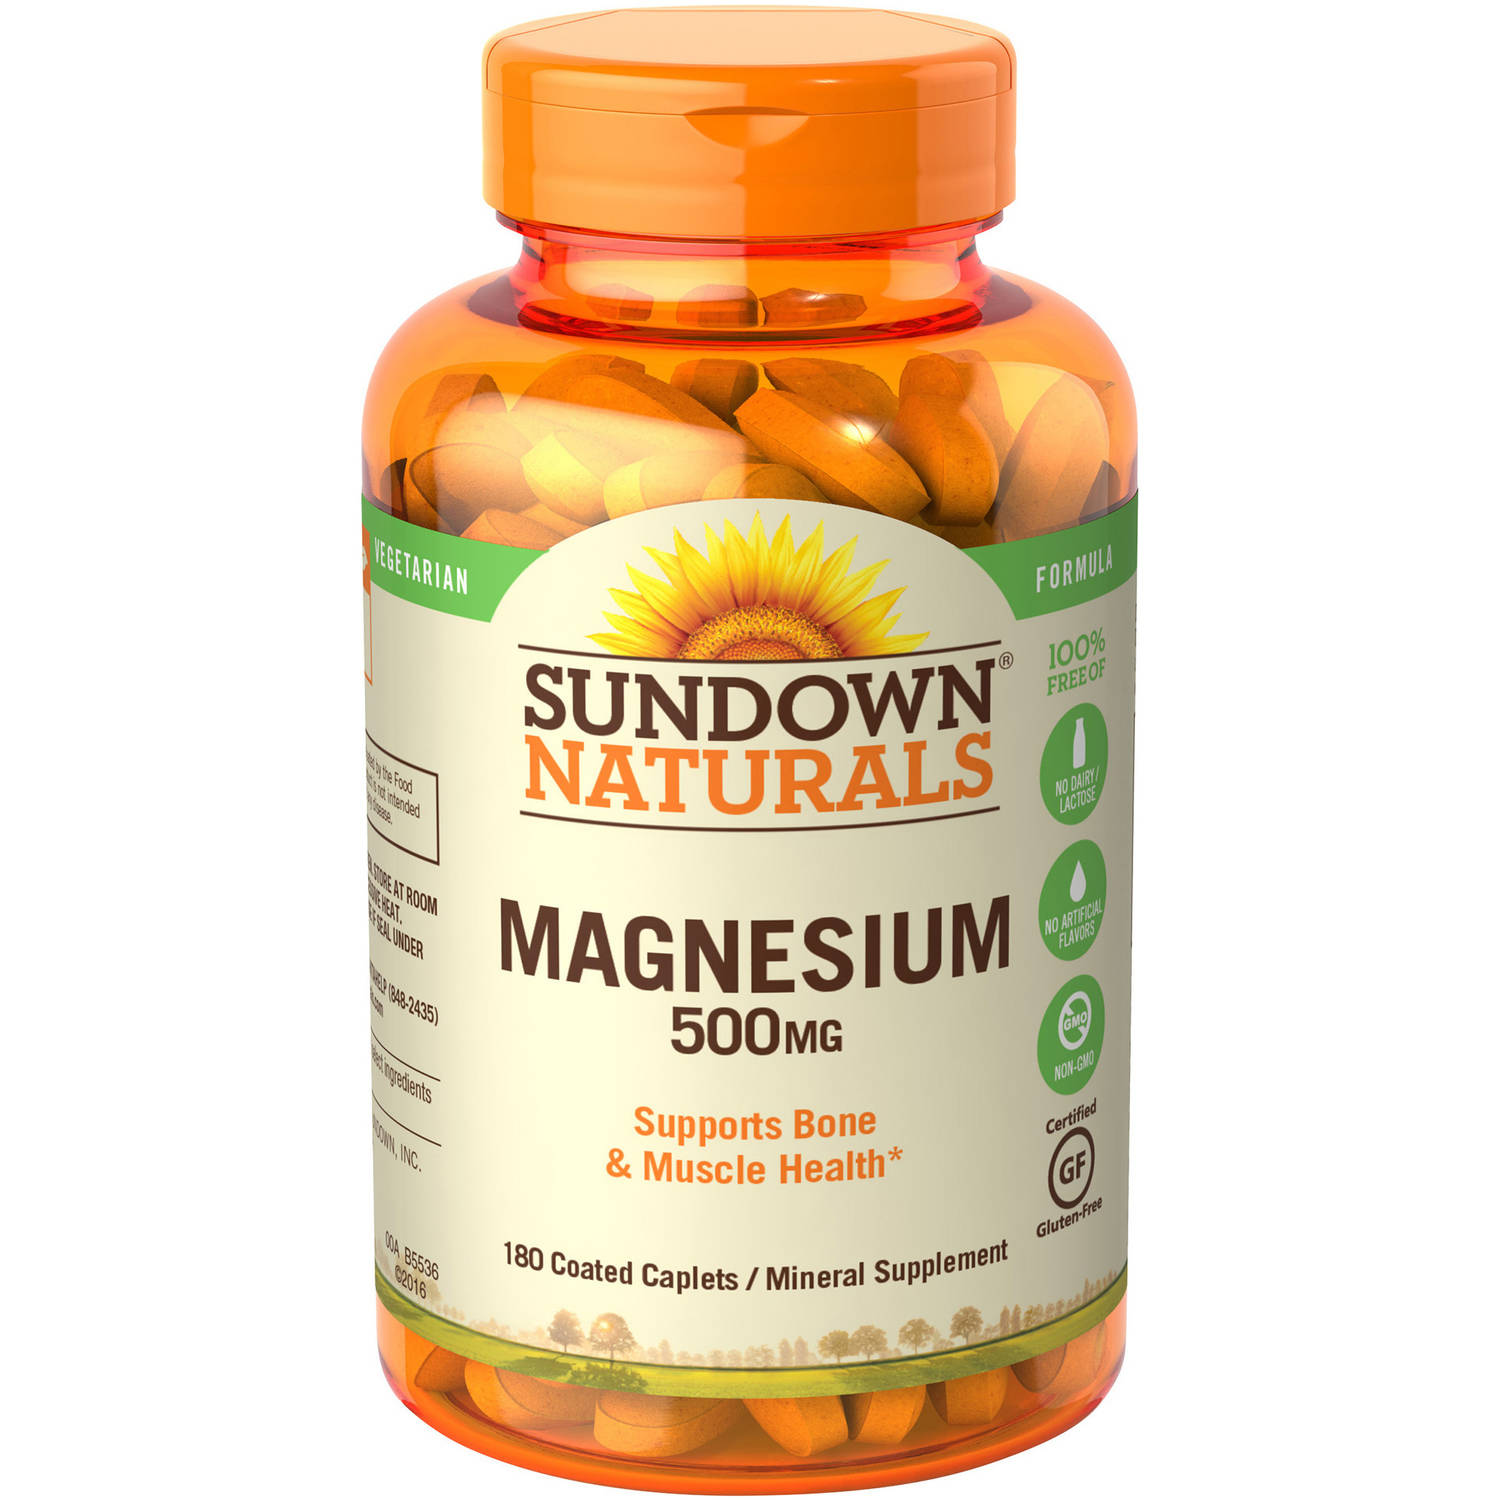 Sundown Naturals Magnesium Mineral Supplement Caplets, 500mg, 180 count